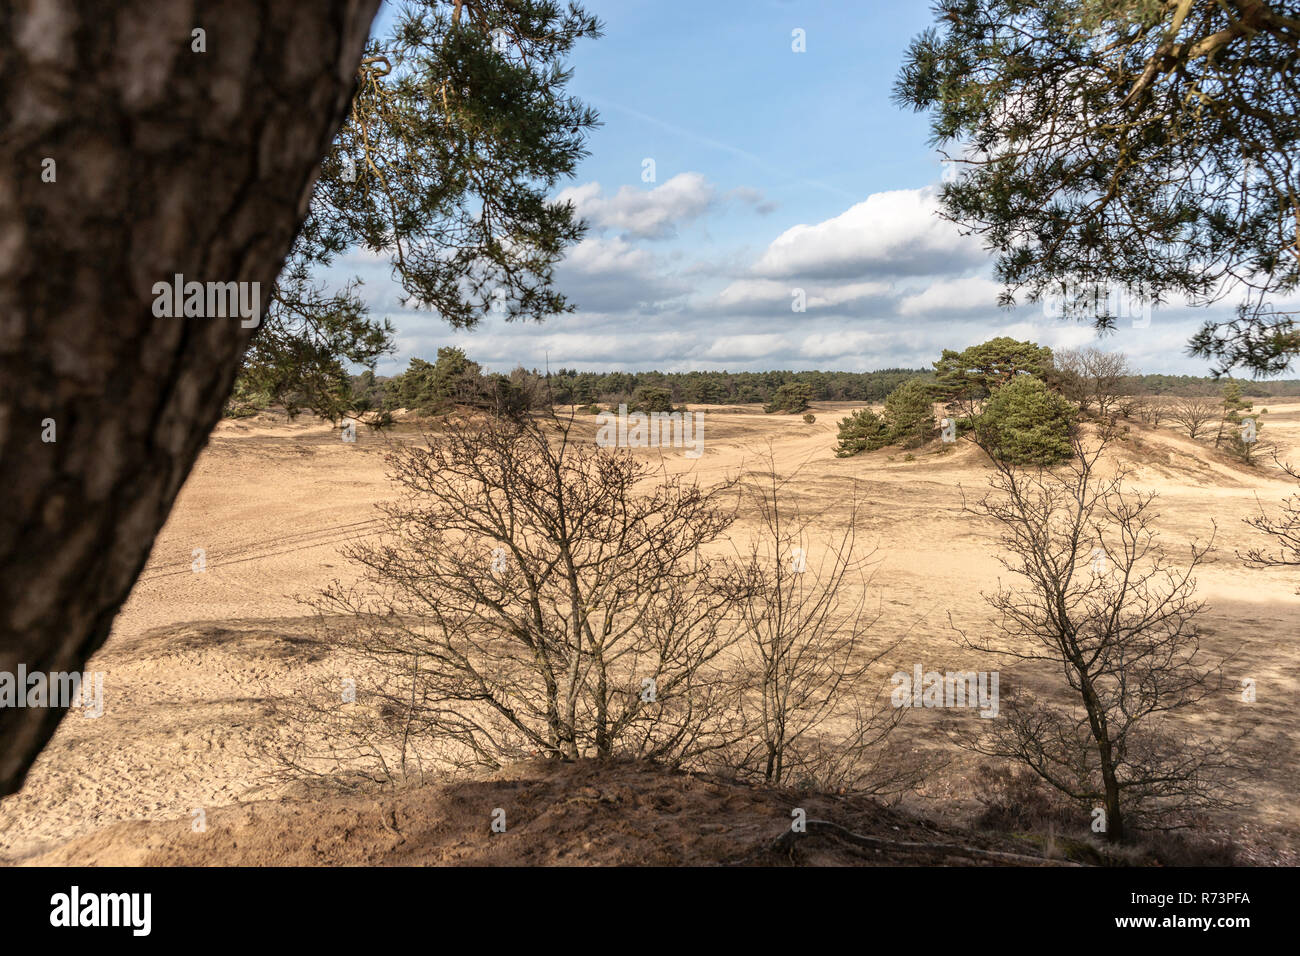 Pine trees and sand dunes in the desert at Kootwijk in the Netherlands - Stock Image